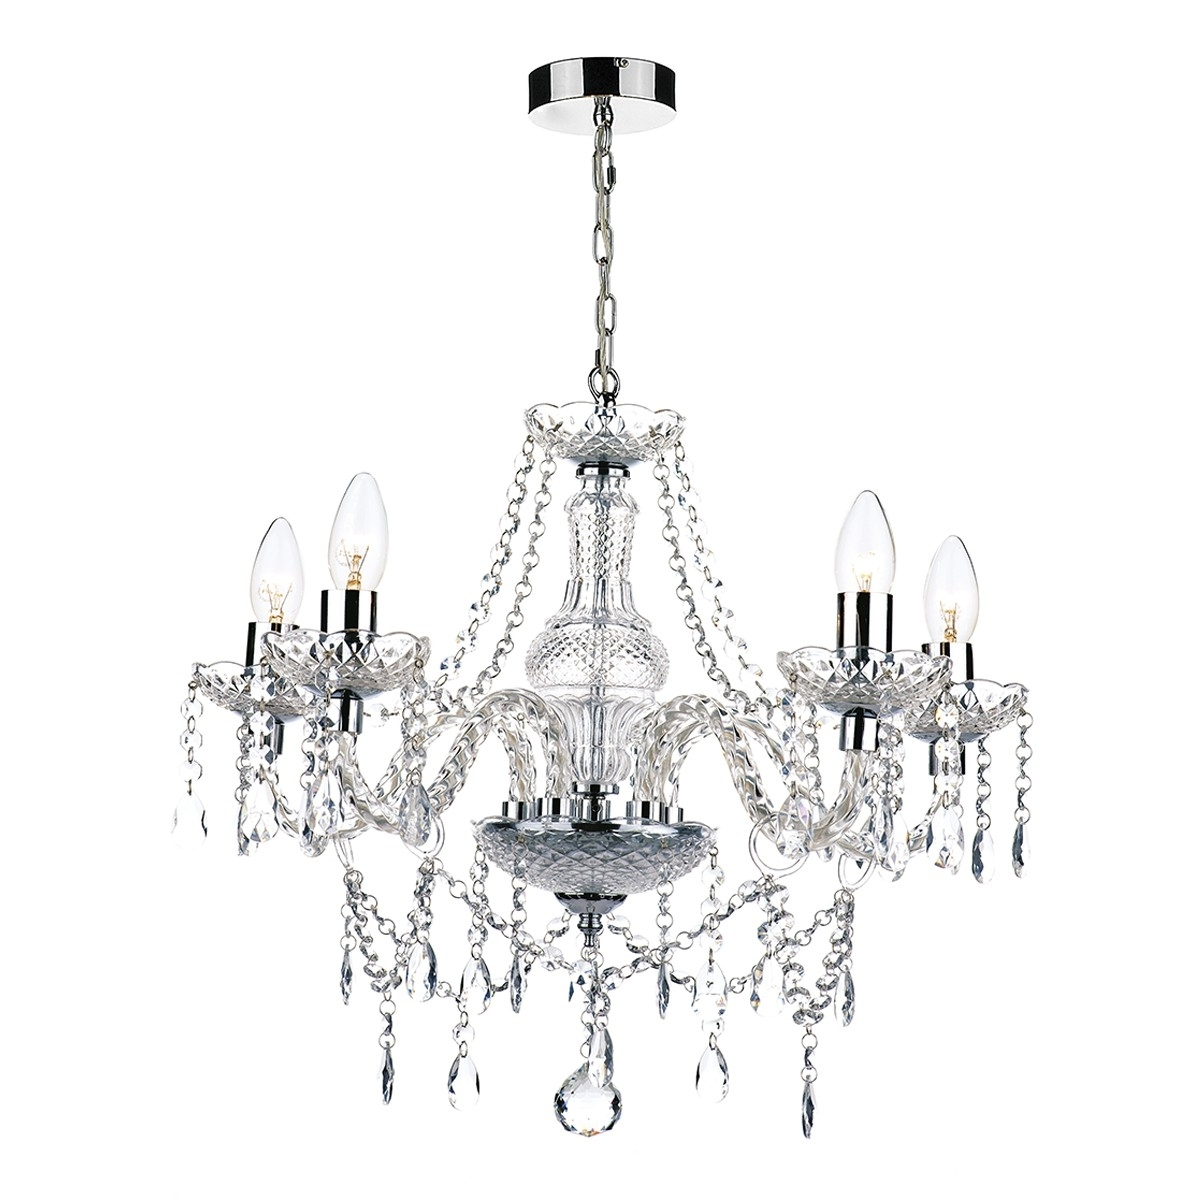 Trendy Light : Light Chandelier Katie Polished Chrome Acrylic Glass Silver Pertaining To Turquoise Crystal Chandelier Lights (View 20 of 20)